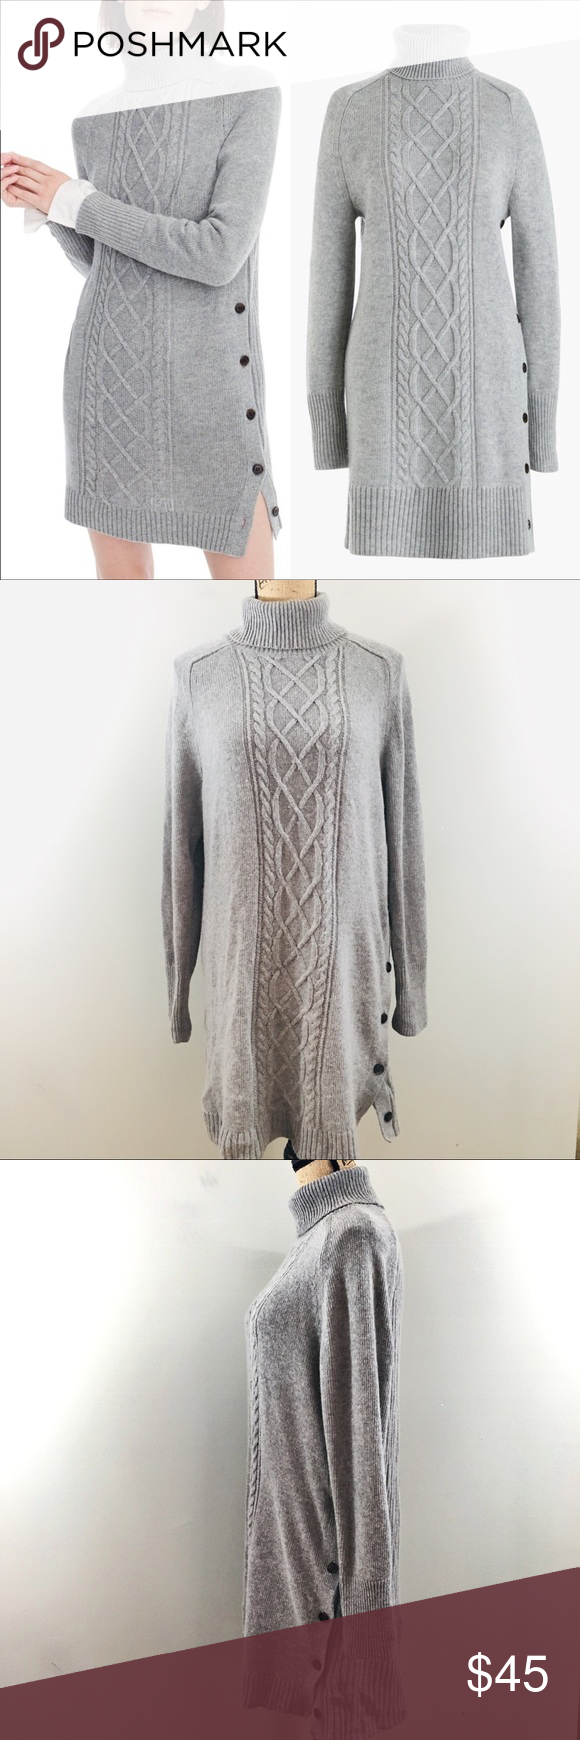 043c2a0ba4b J. Crew Cable Knit Turtleneck Sweater Dress Large - very soft sweater dress  that s 50